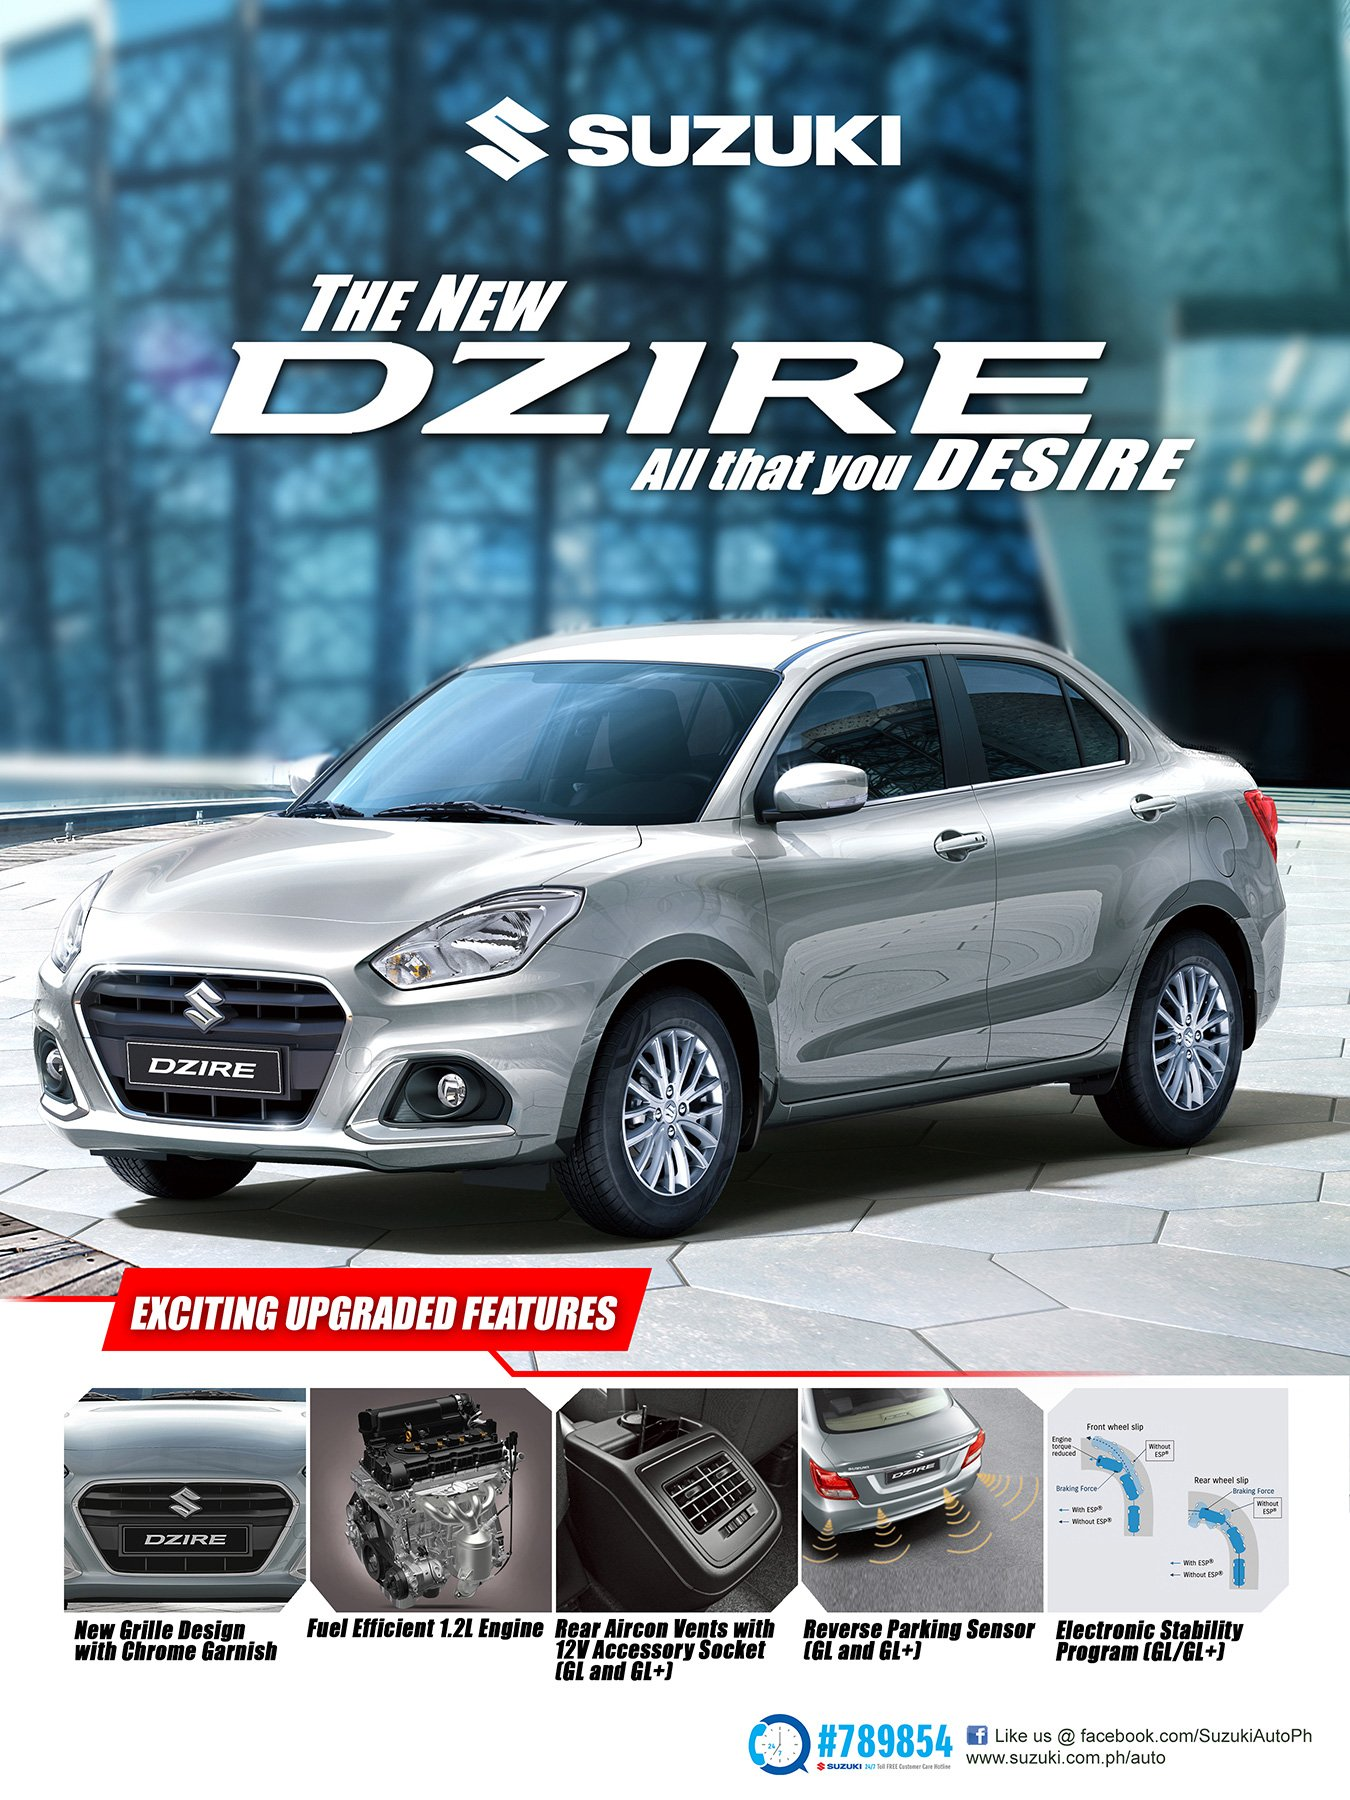 Realize the Dzire to upgrade your lifestyle this year